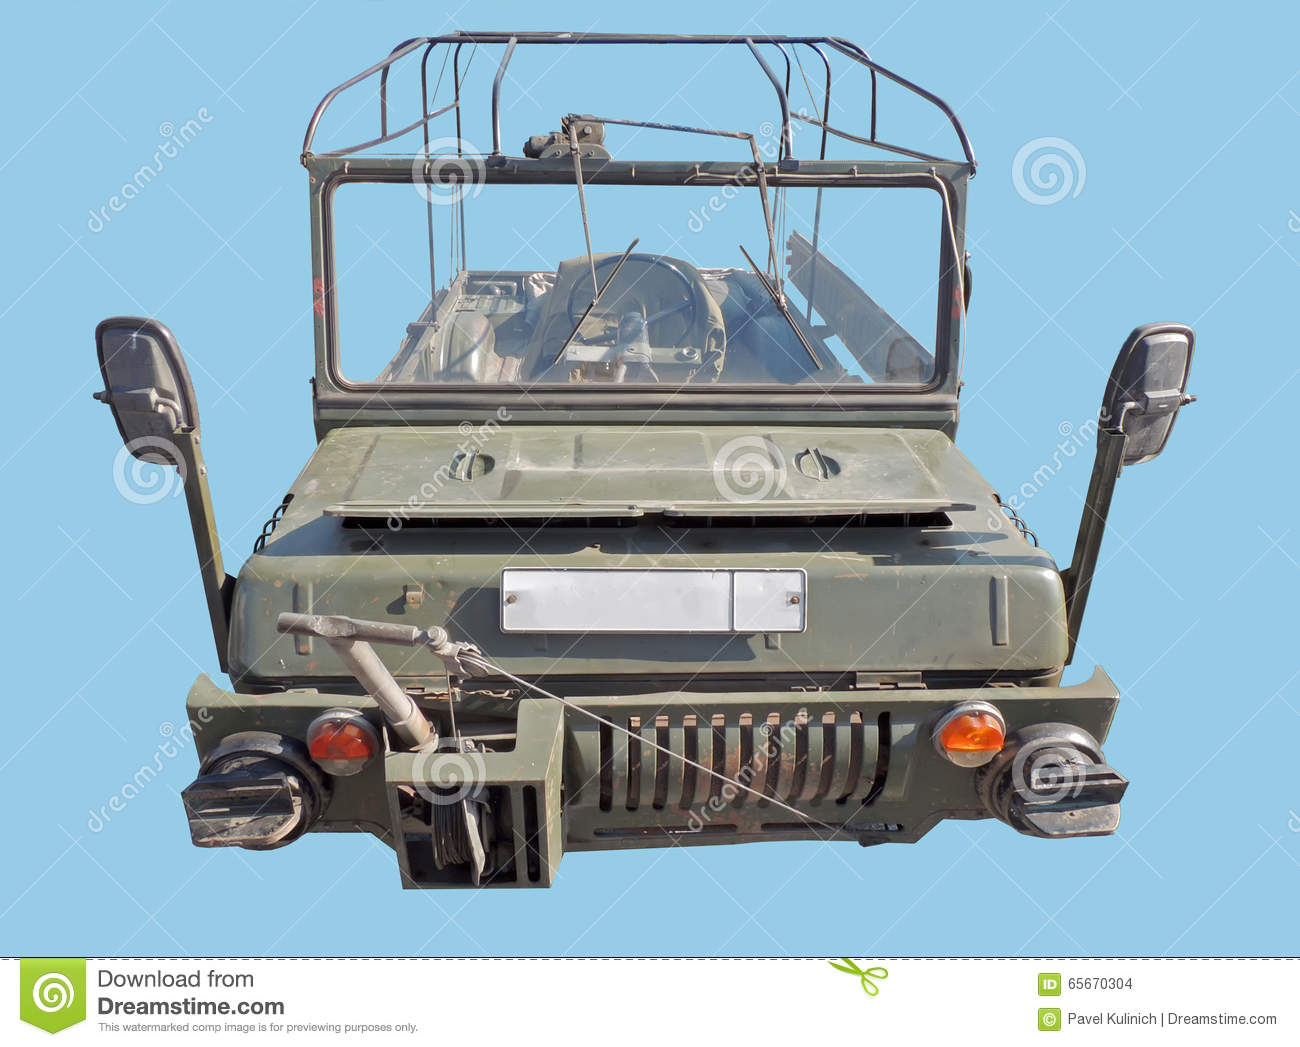 small soviet four wheel drive amphibious vehicle stock photo image 65670304. Black Bedroom Furniture Sets. Home Design Ideas